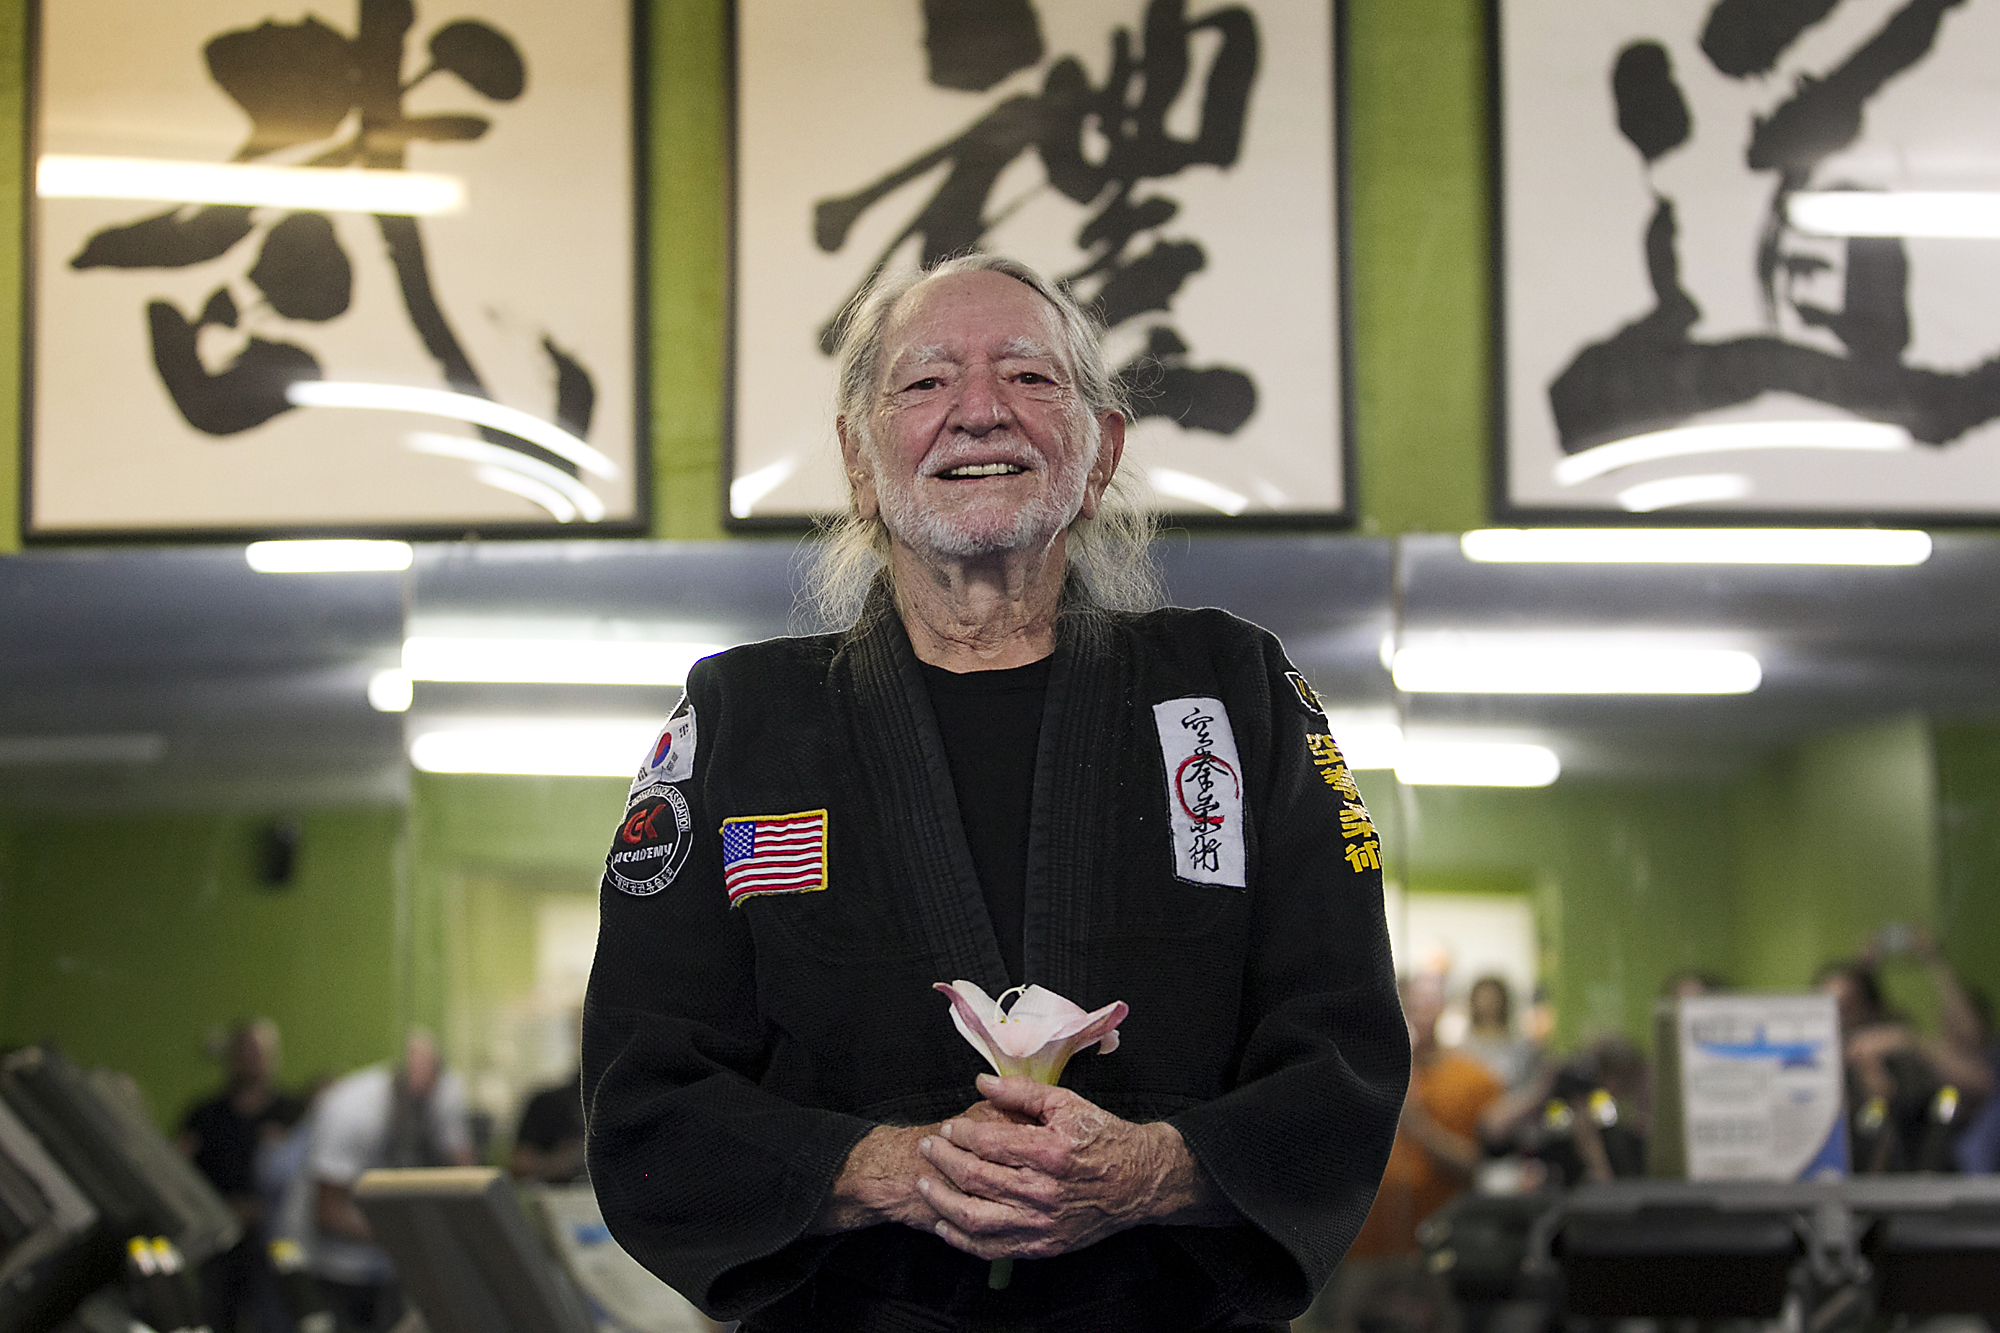 Willie Nelson, the country music icon who turns 81 this week, smiles as he receives his fifth-degree black belt in the martial art of Gong Kwon Yu Sul on Monday, April 28, 2014, in Austin, Texas.